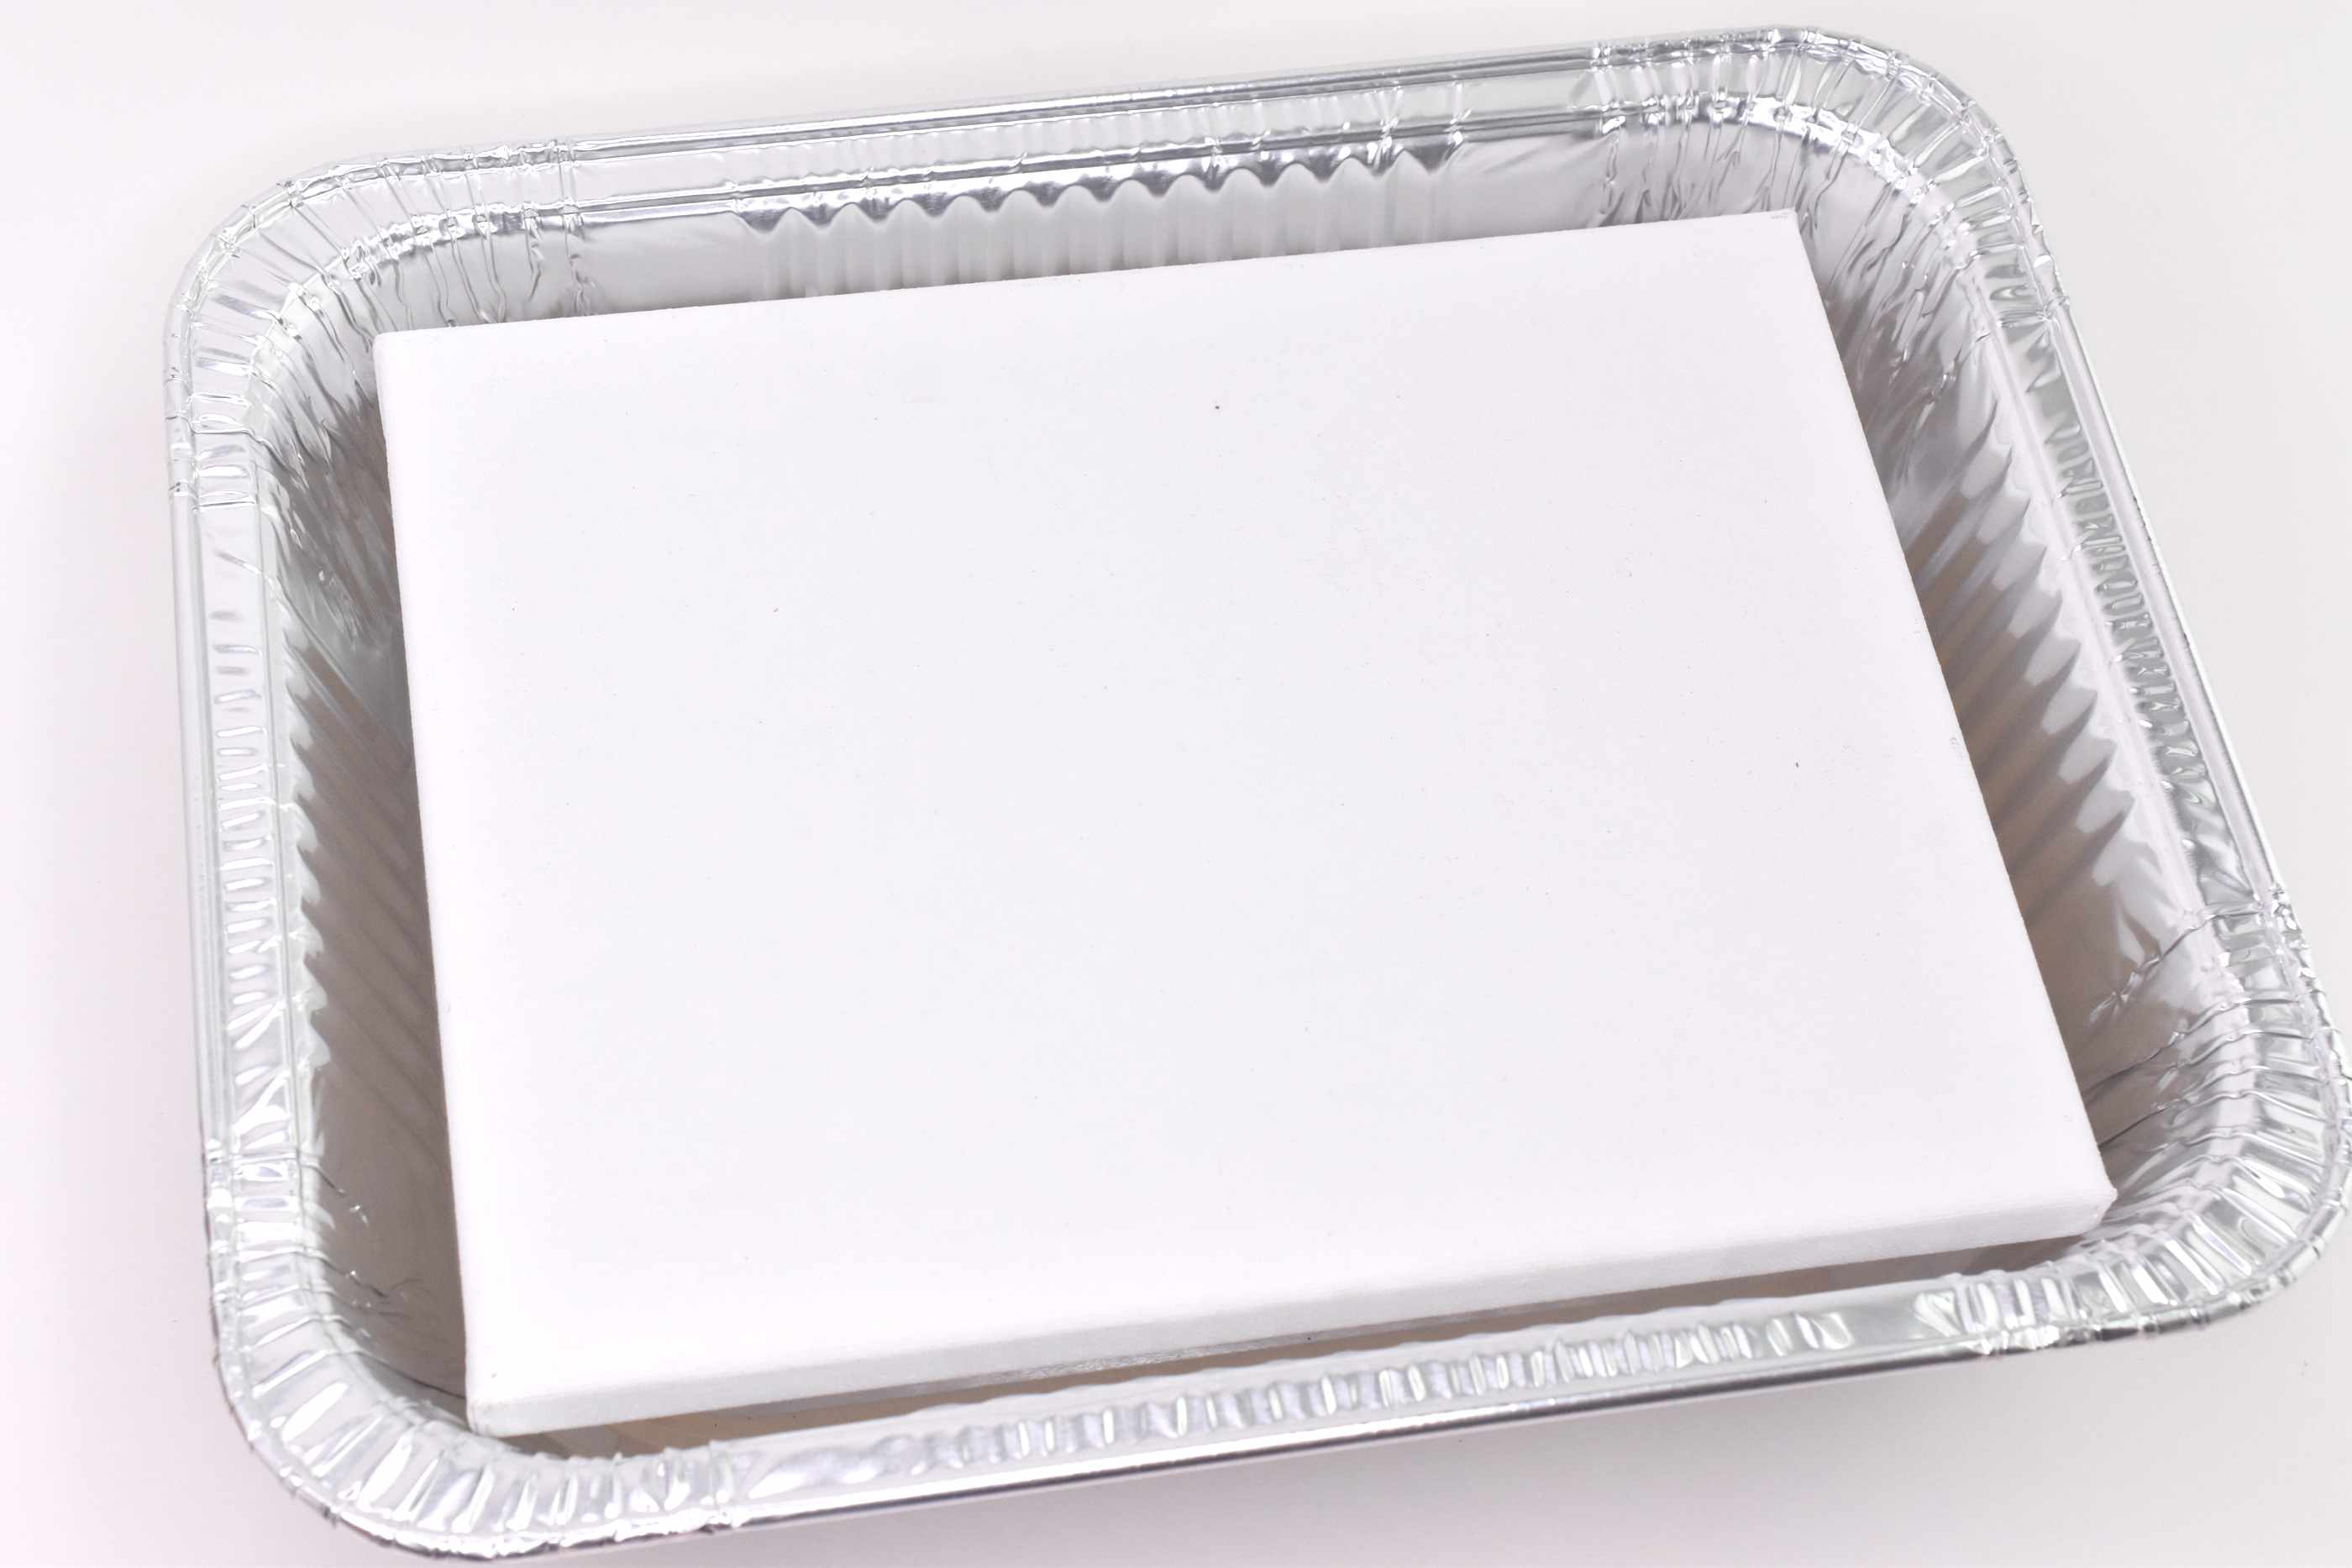 Blank canvas in a metal tray